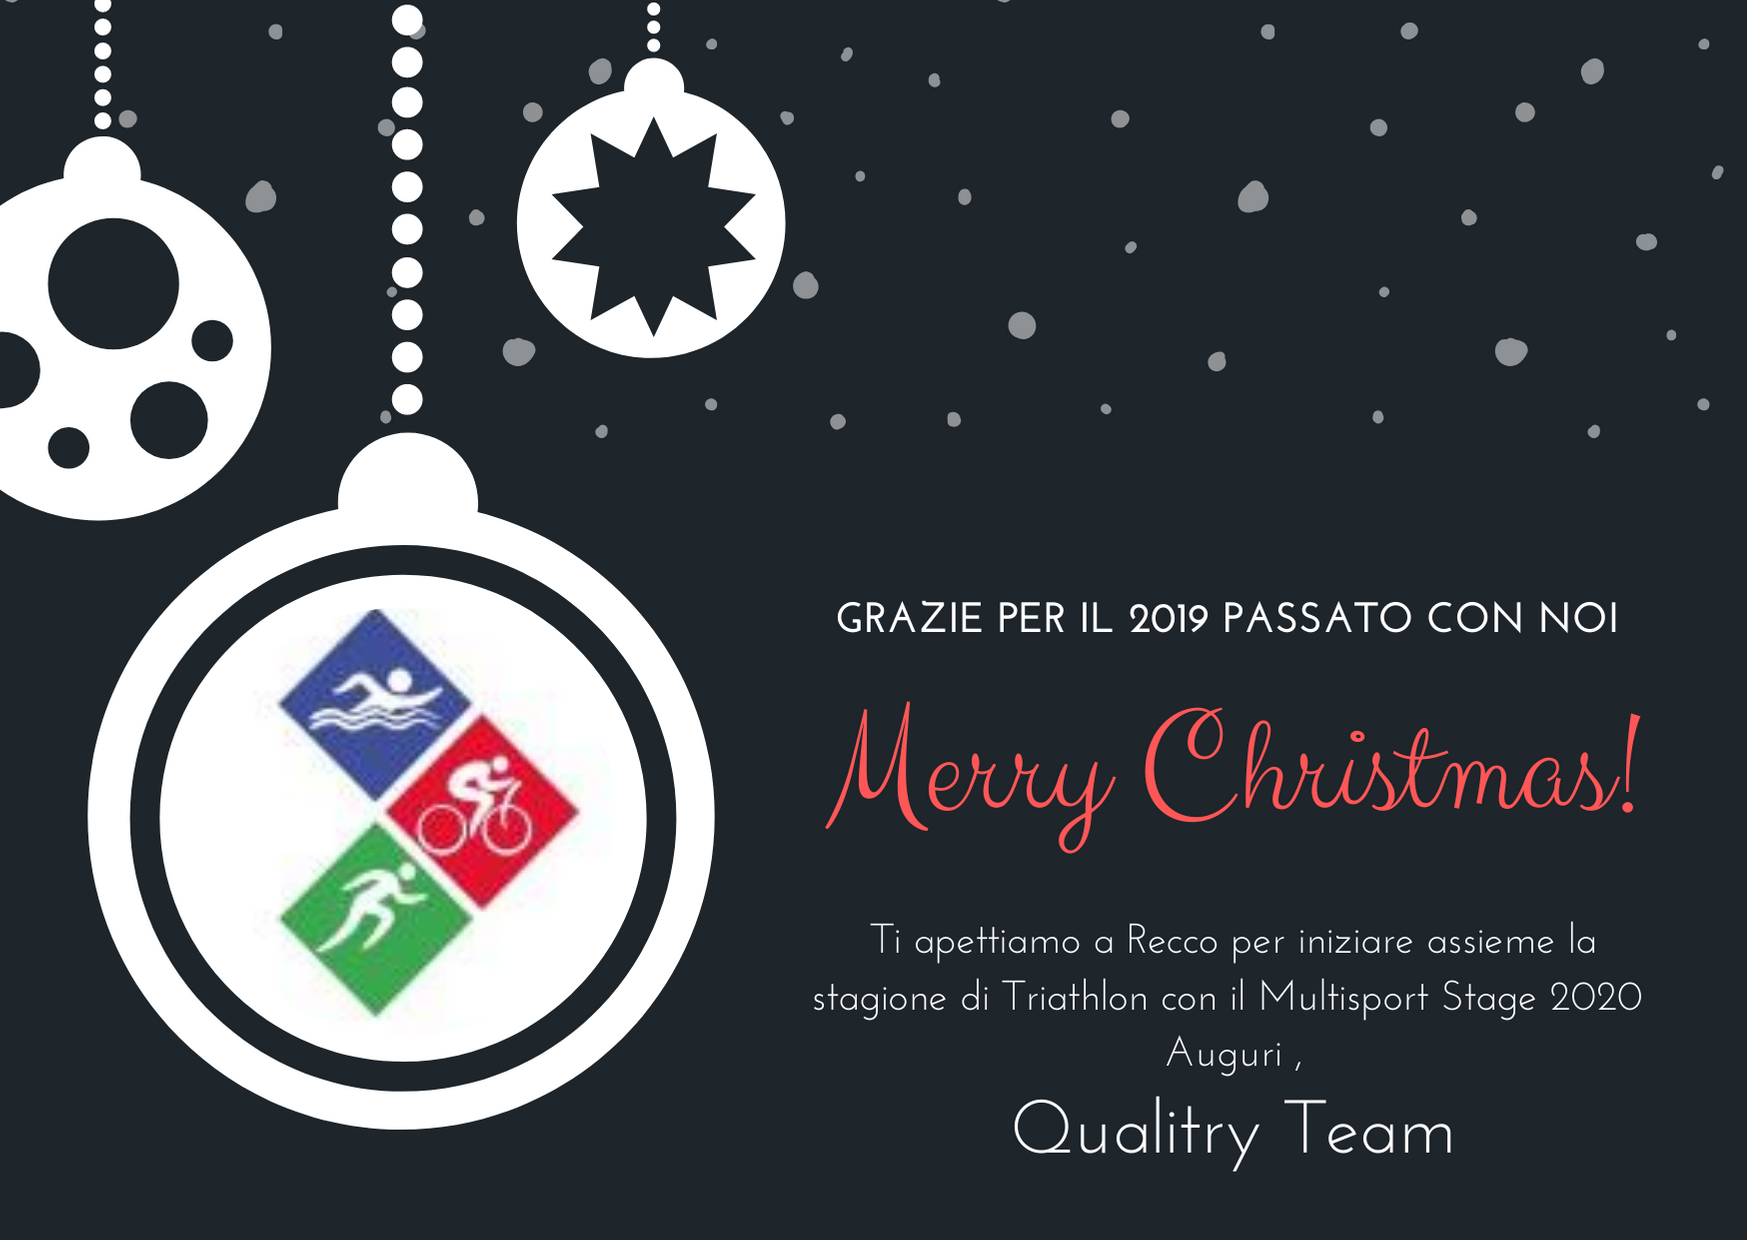 Merry Christmas dal Team Qualitry